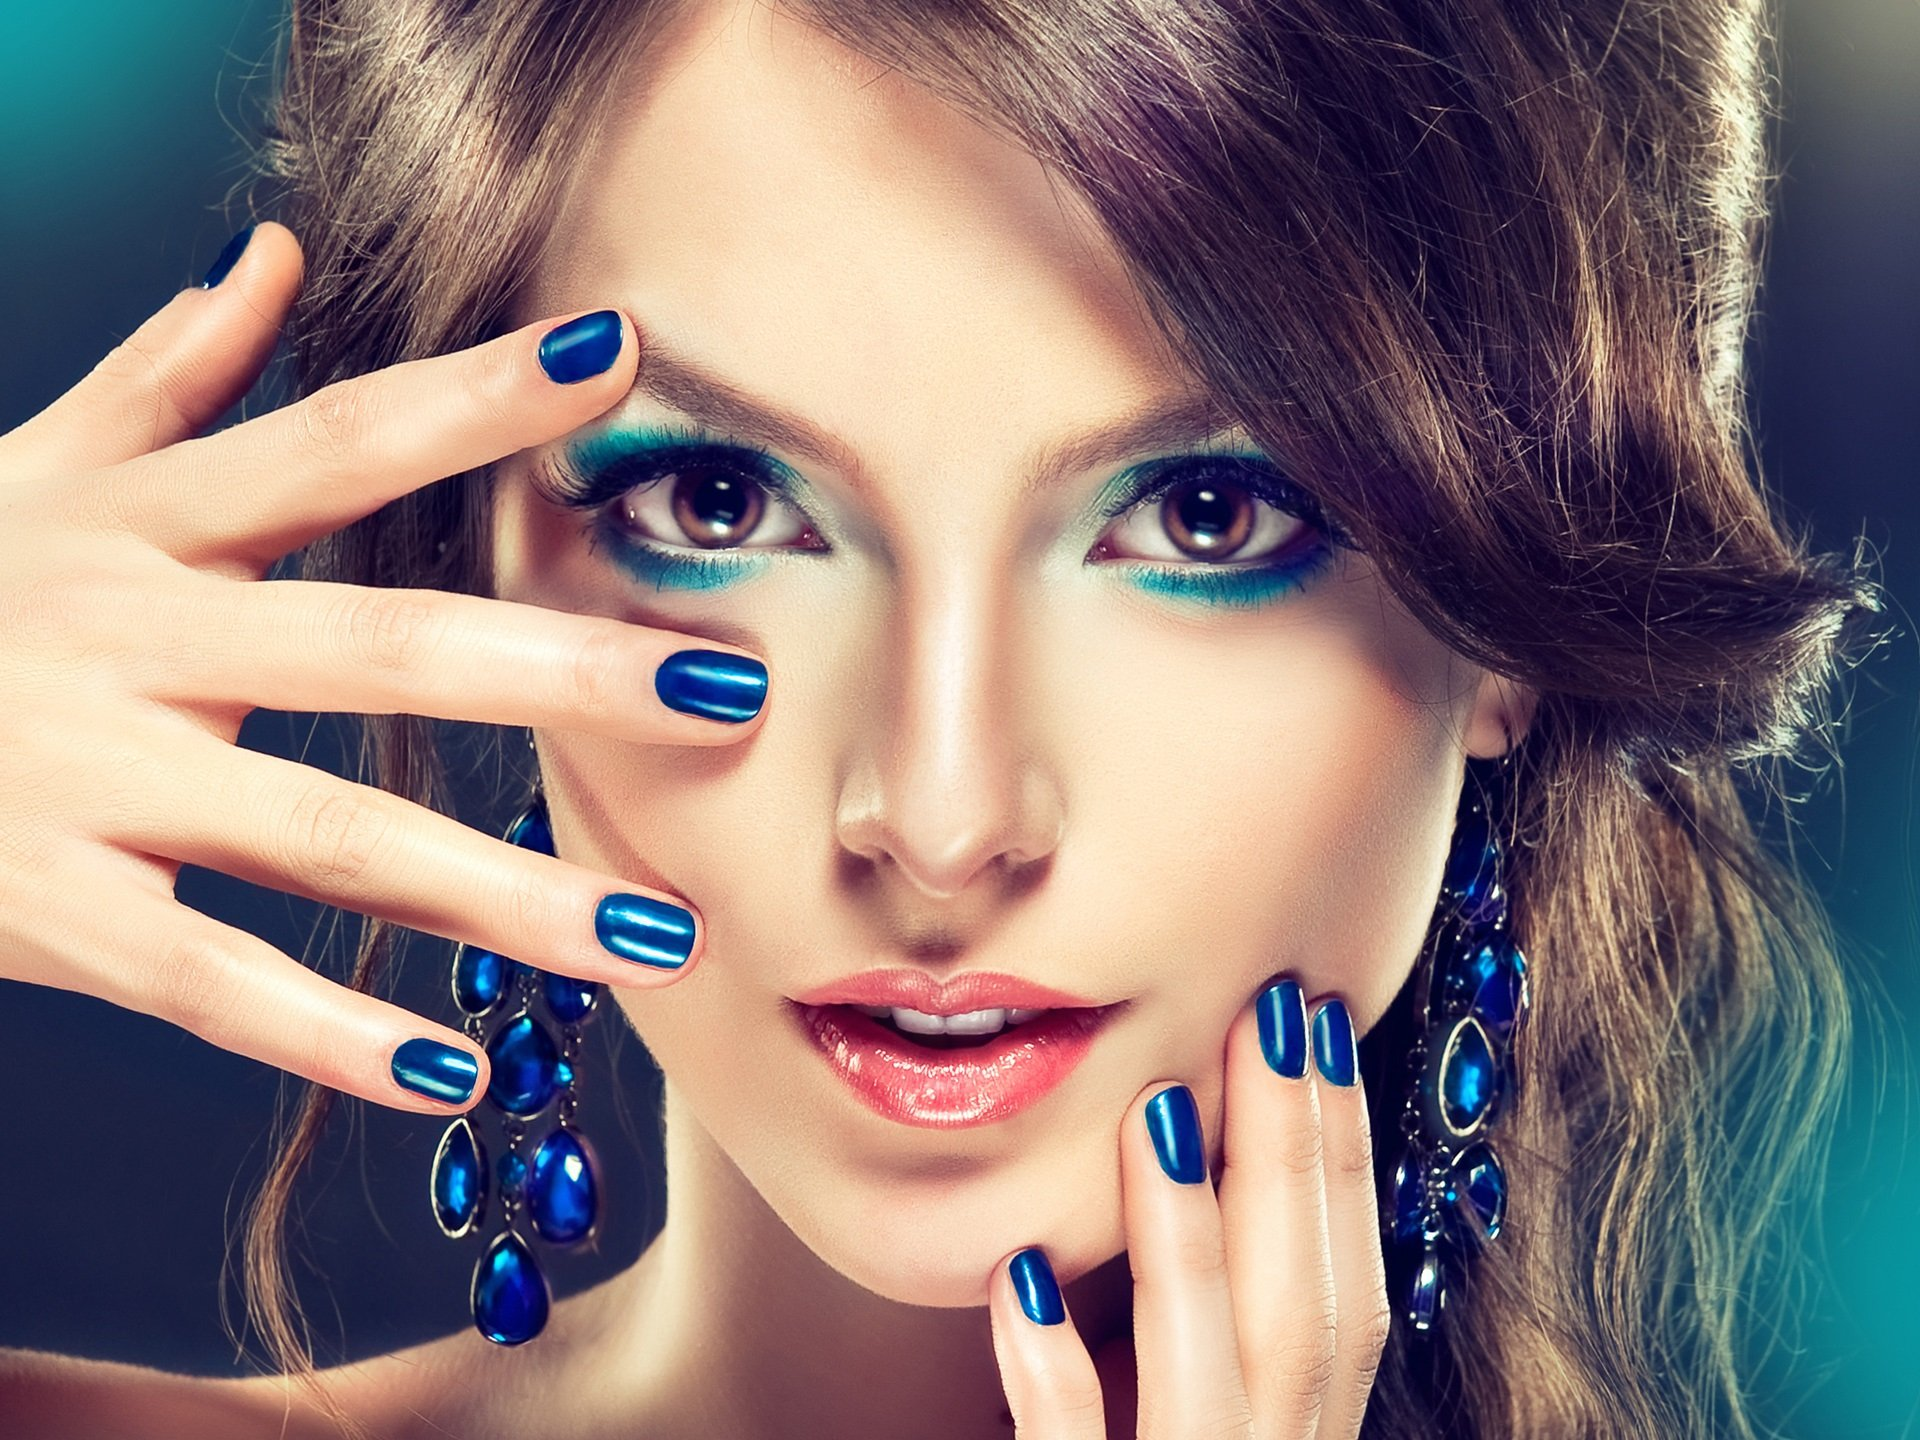 Makeup Fashion Girl Blue Style Sensuality Wallpaper